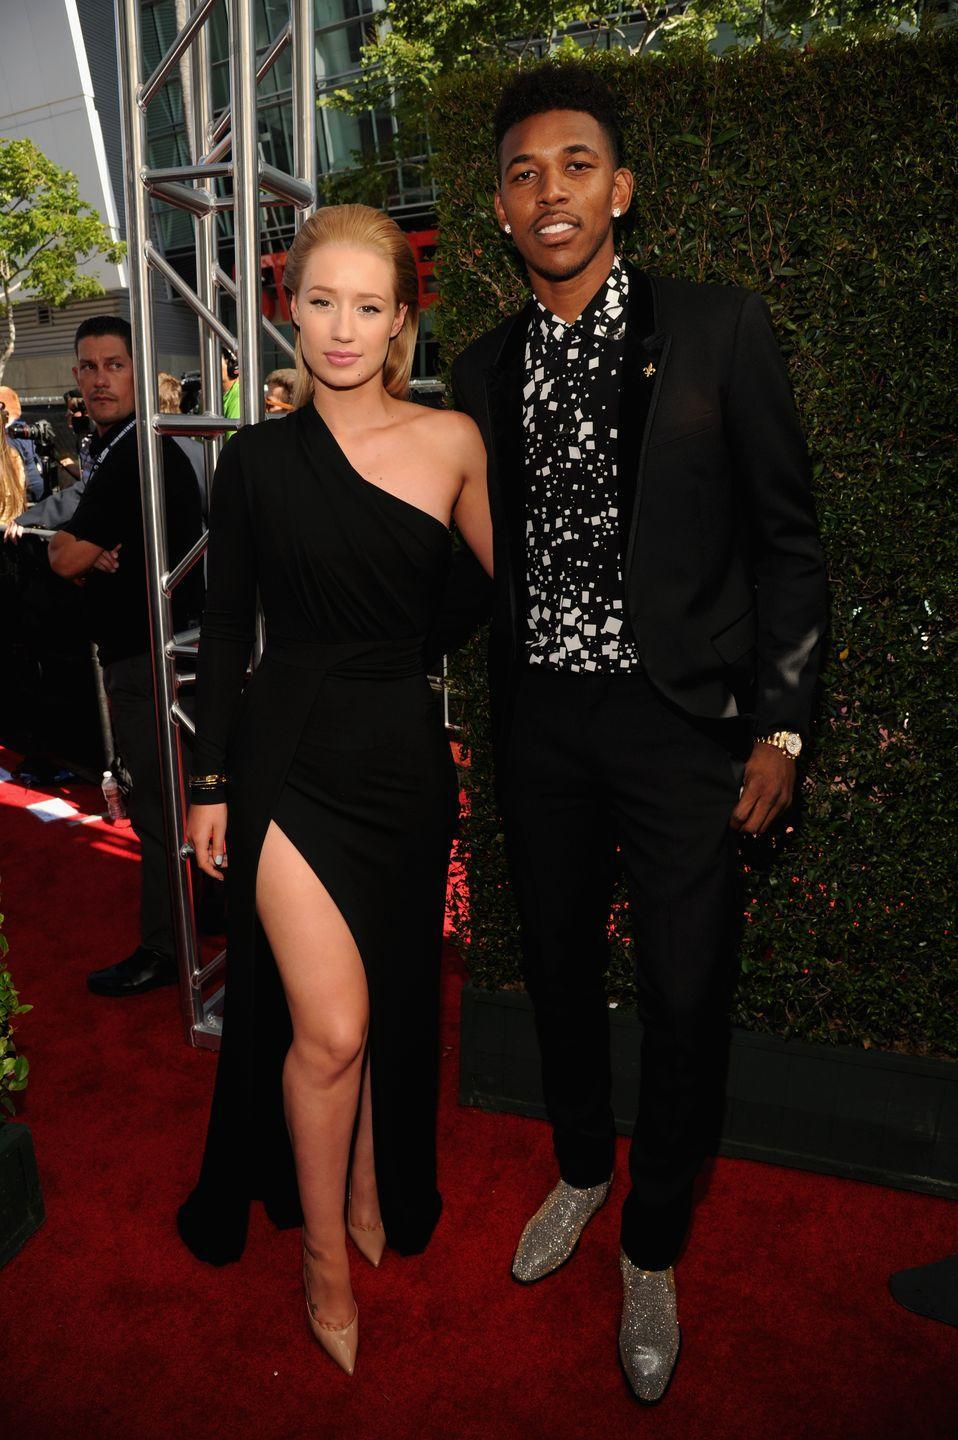 """<p>In 2016, video of the basketball player bragging about cheating on Iggy was leaked by one of Nick's Laker teammates, according to <em><a href=""""https://people.com/celebrity/iggy-azalea-reacts-to-fianc-nick-youngs-alleged-cheating-confession/"""" rel=""""nofollow noopener"""" target=""""_blank"""" data-ylk=""""slk:People"""" class=""""link rapid-noclick-resp"""">People</a></em>. Other than the video, there had been no proof of his infidelity, so Iggy stuck by her fiancé (at first). </p><p>Then, Iggy saw security footage of Nick cheating on her in their home while she was away, reports <em><a href=""""https://people.com/music/iggy-azalea-burned-nick-youngs-clothes-after-split/"""" rel=""""nofollow noopener"""" target=""""_blank"""" data-ylk=""""slk:People"""" class=""""link rapid-noclick-resp"""">People</a></em>. This time, she burned his stuff in a bonfire, and broke off their engagement.</p>"""